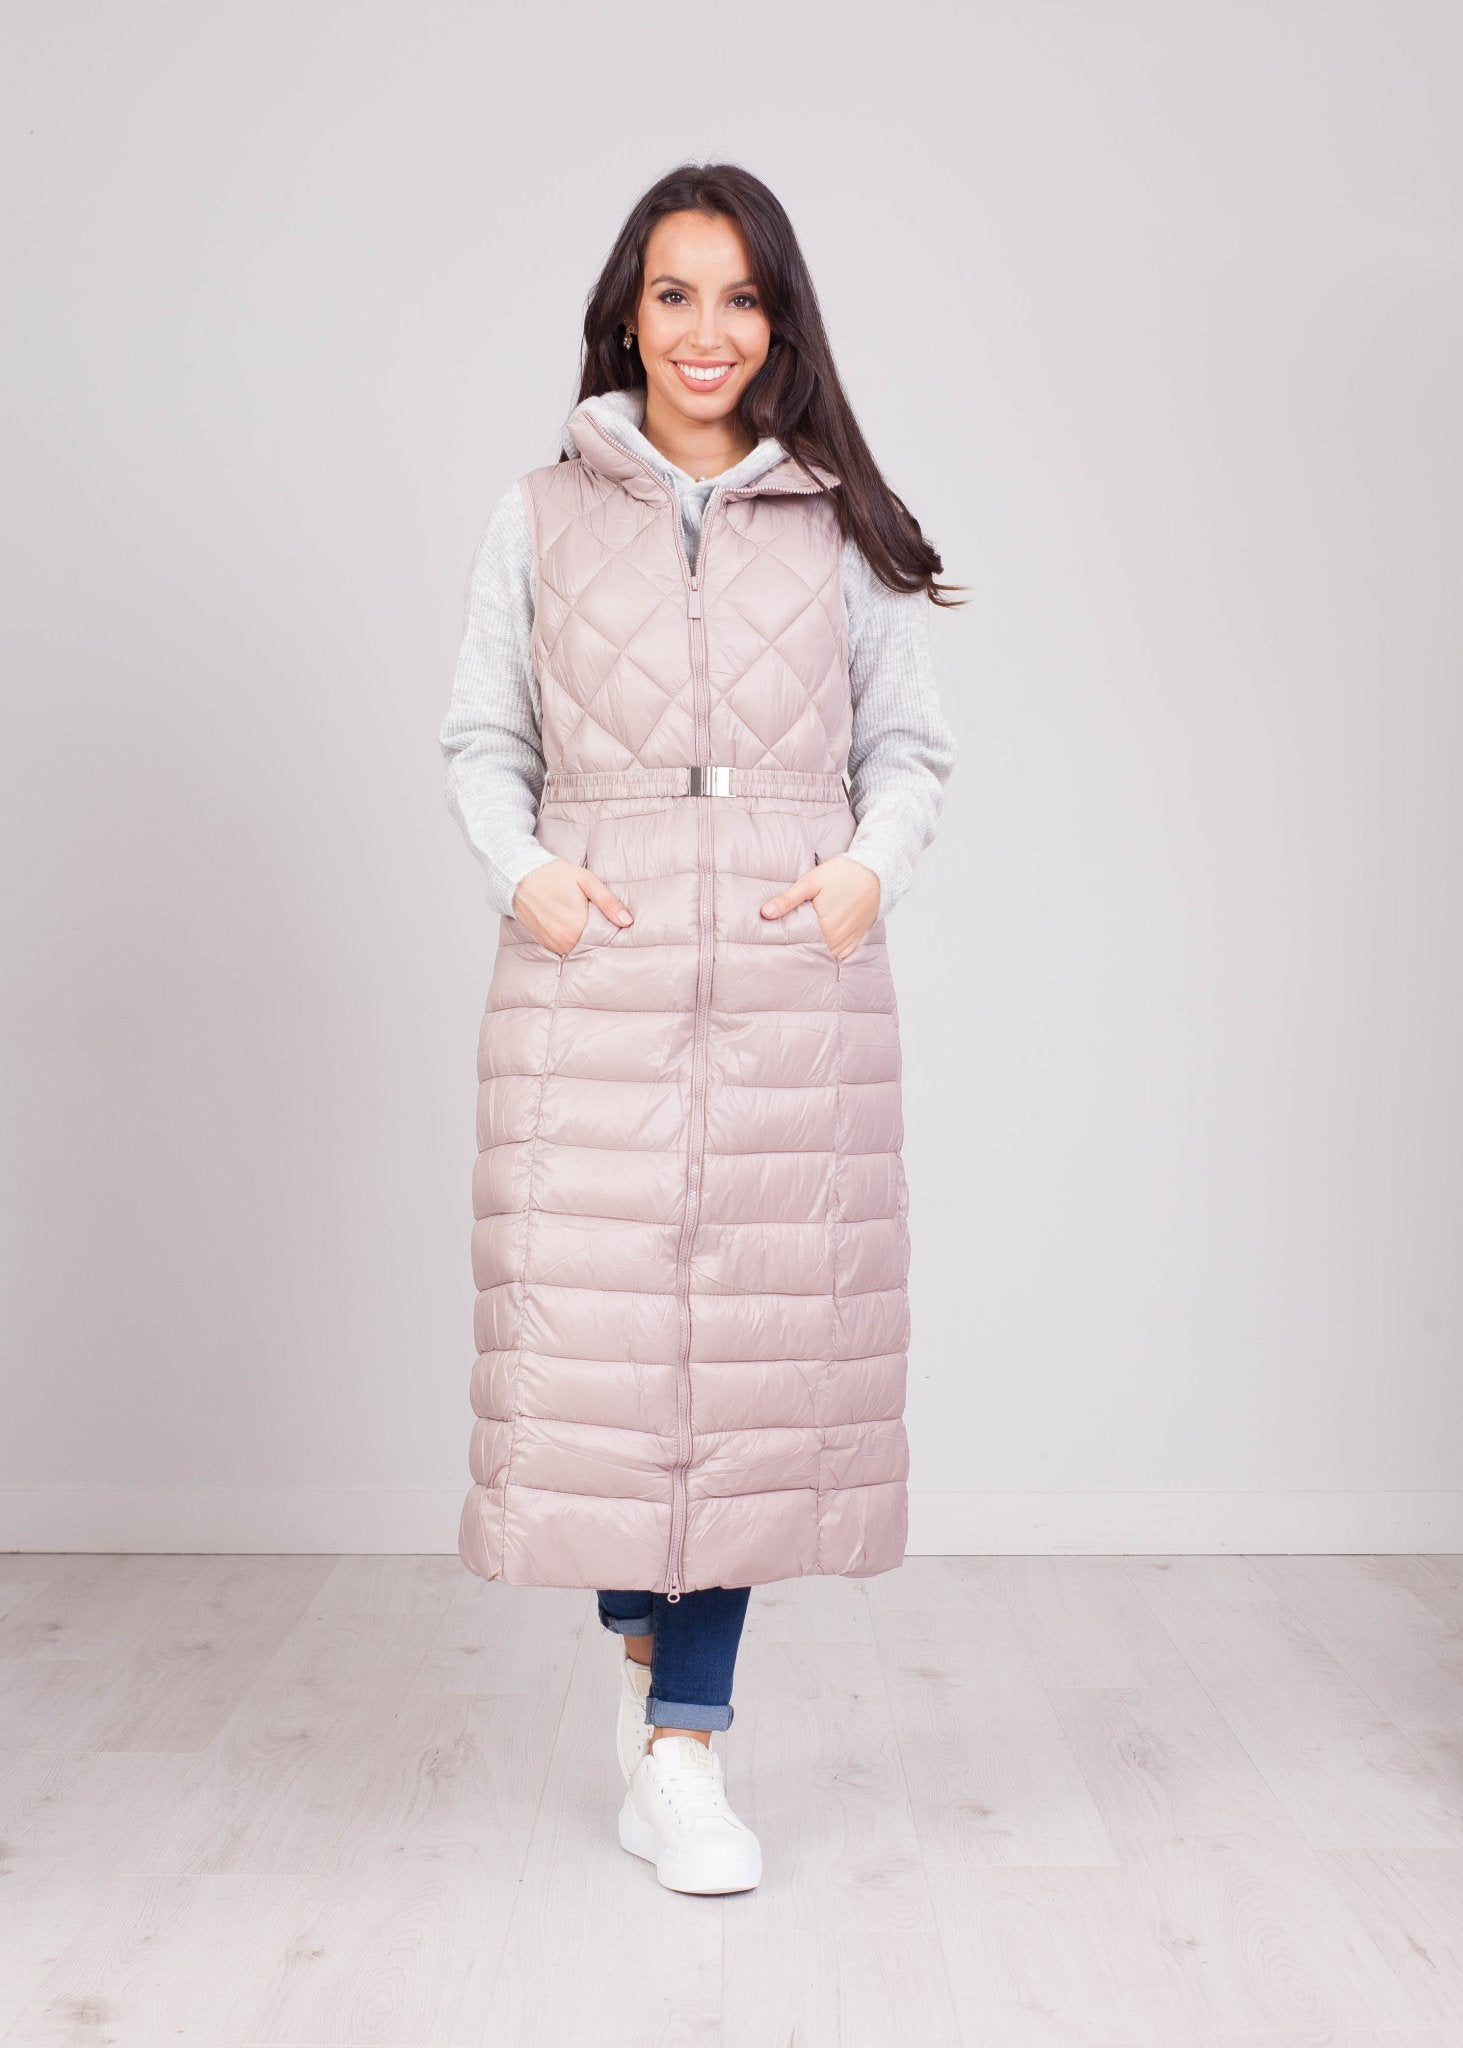 Priya Mauve Longline Gilet - The Walk in Wardrobe